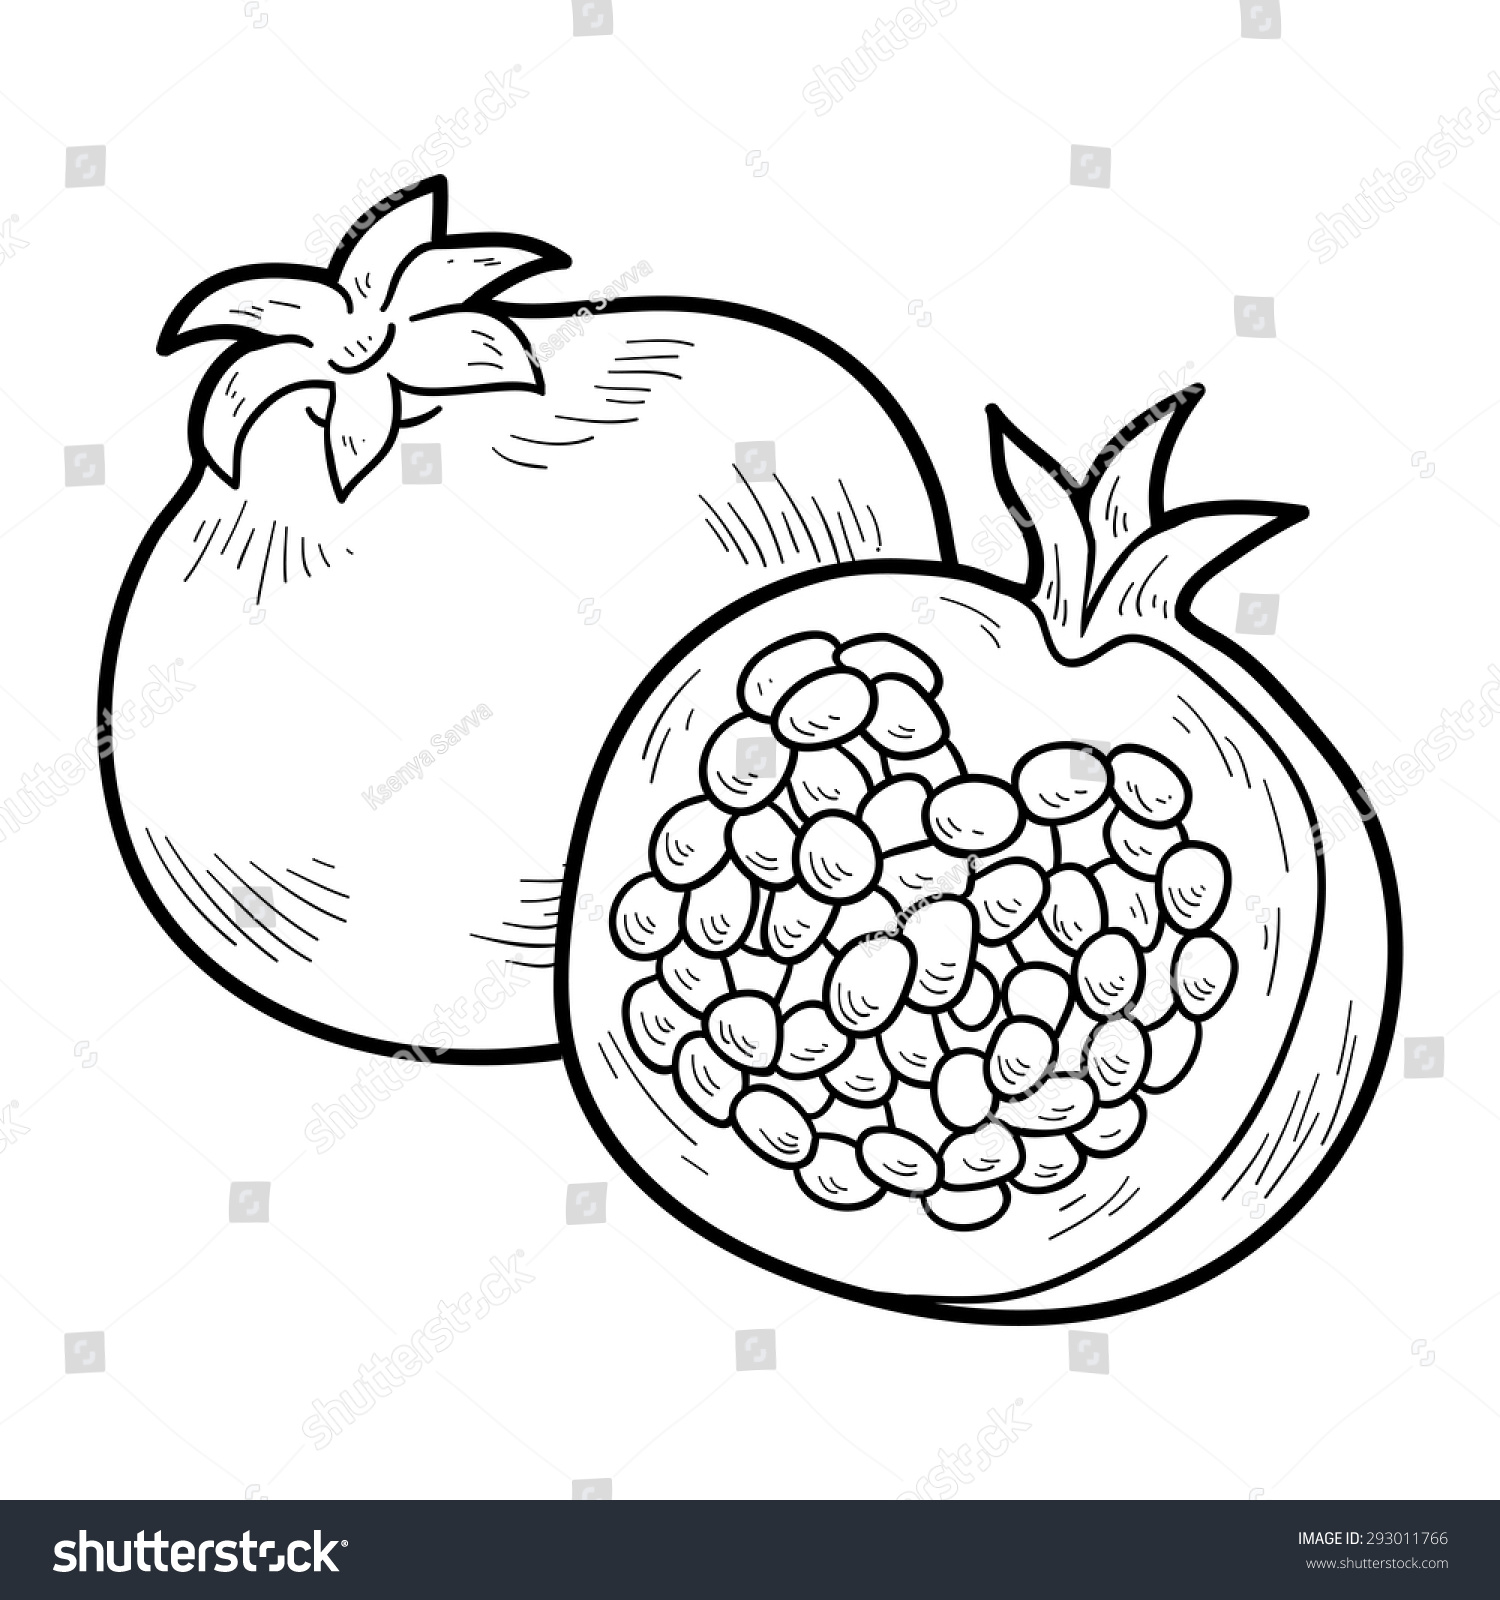 Coloring book pictures of vegetables - Coloring Book Fruits And Vegetables Pomegranate